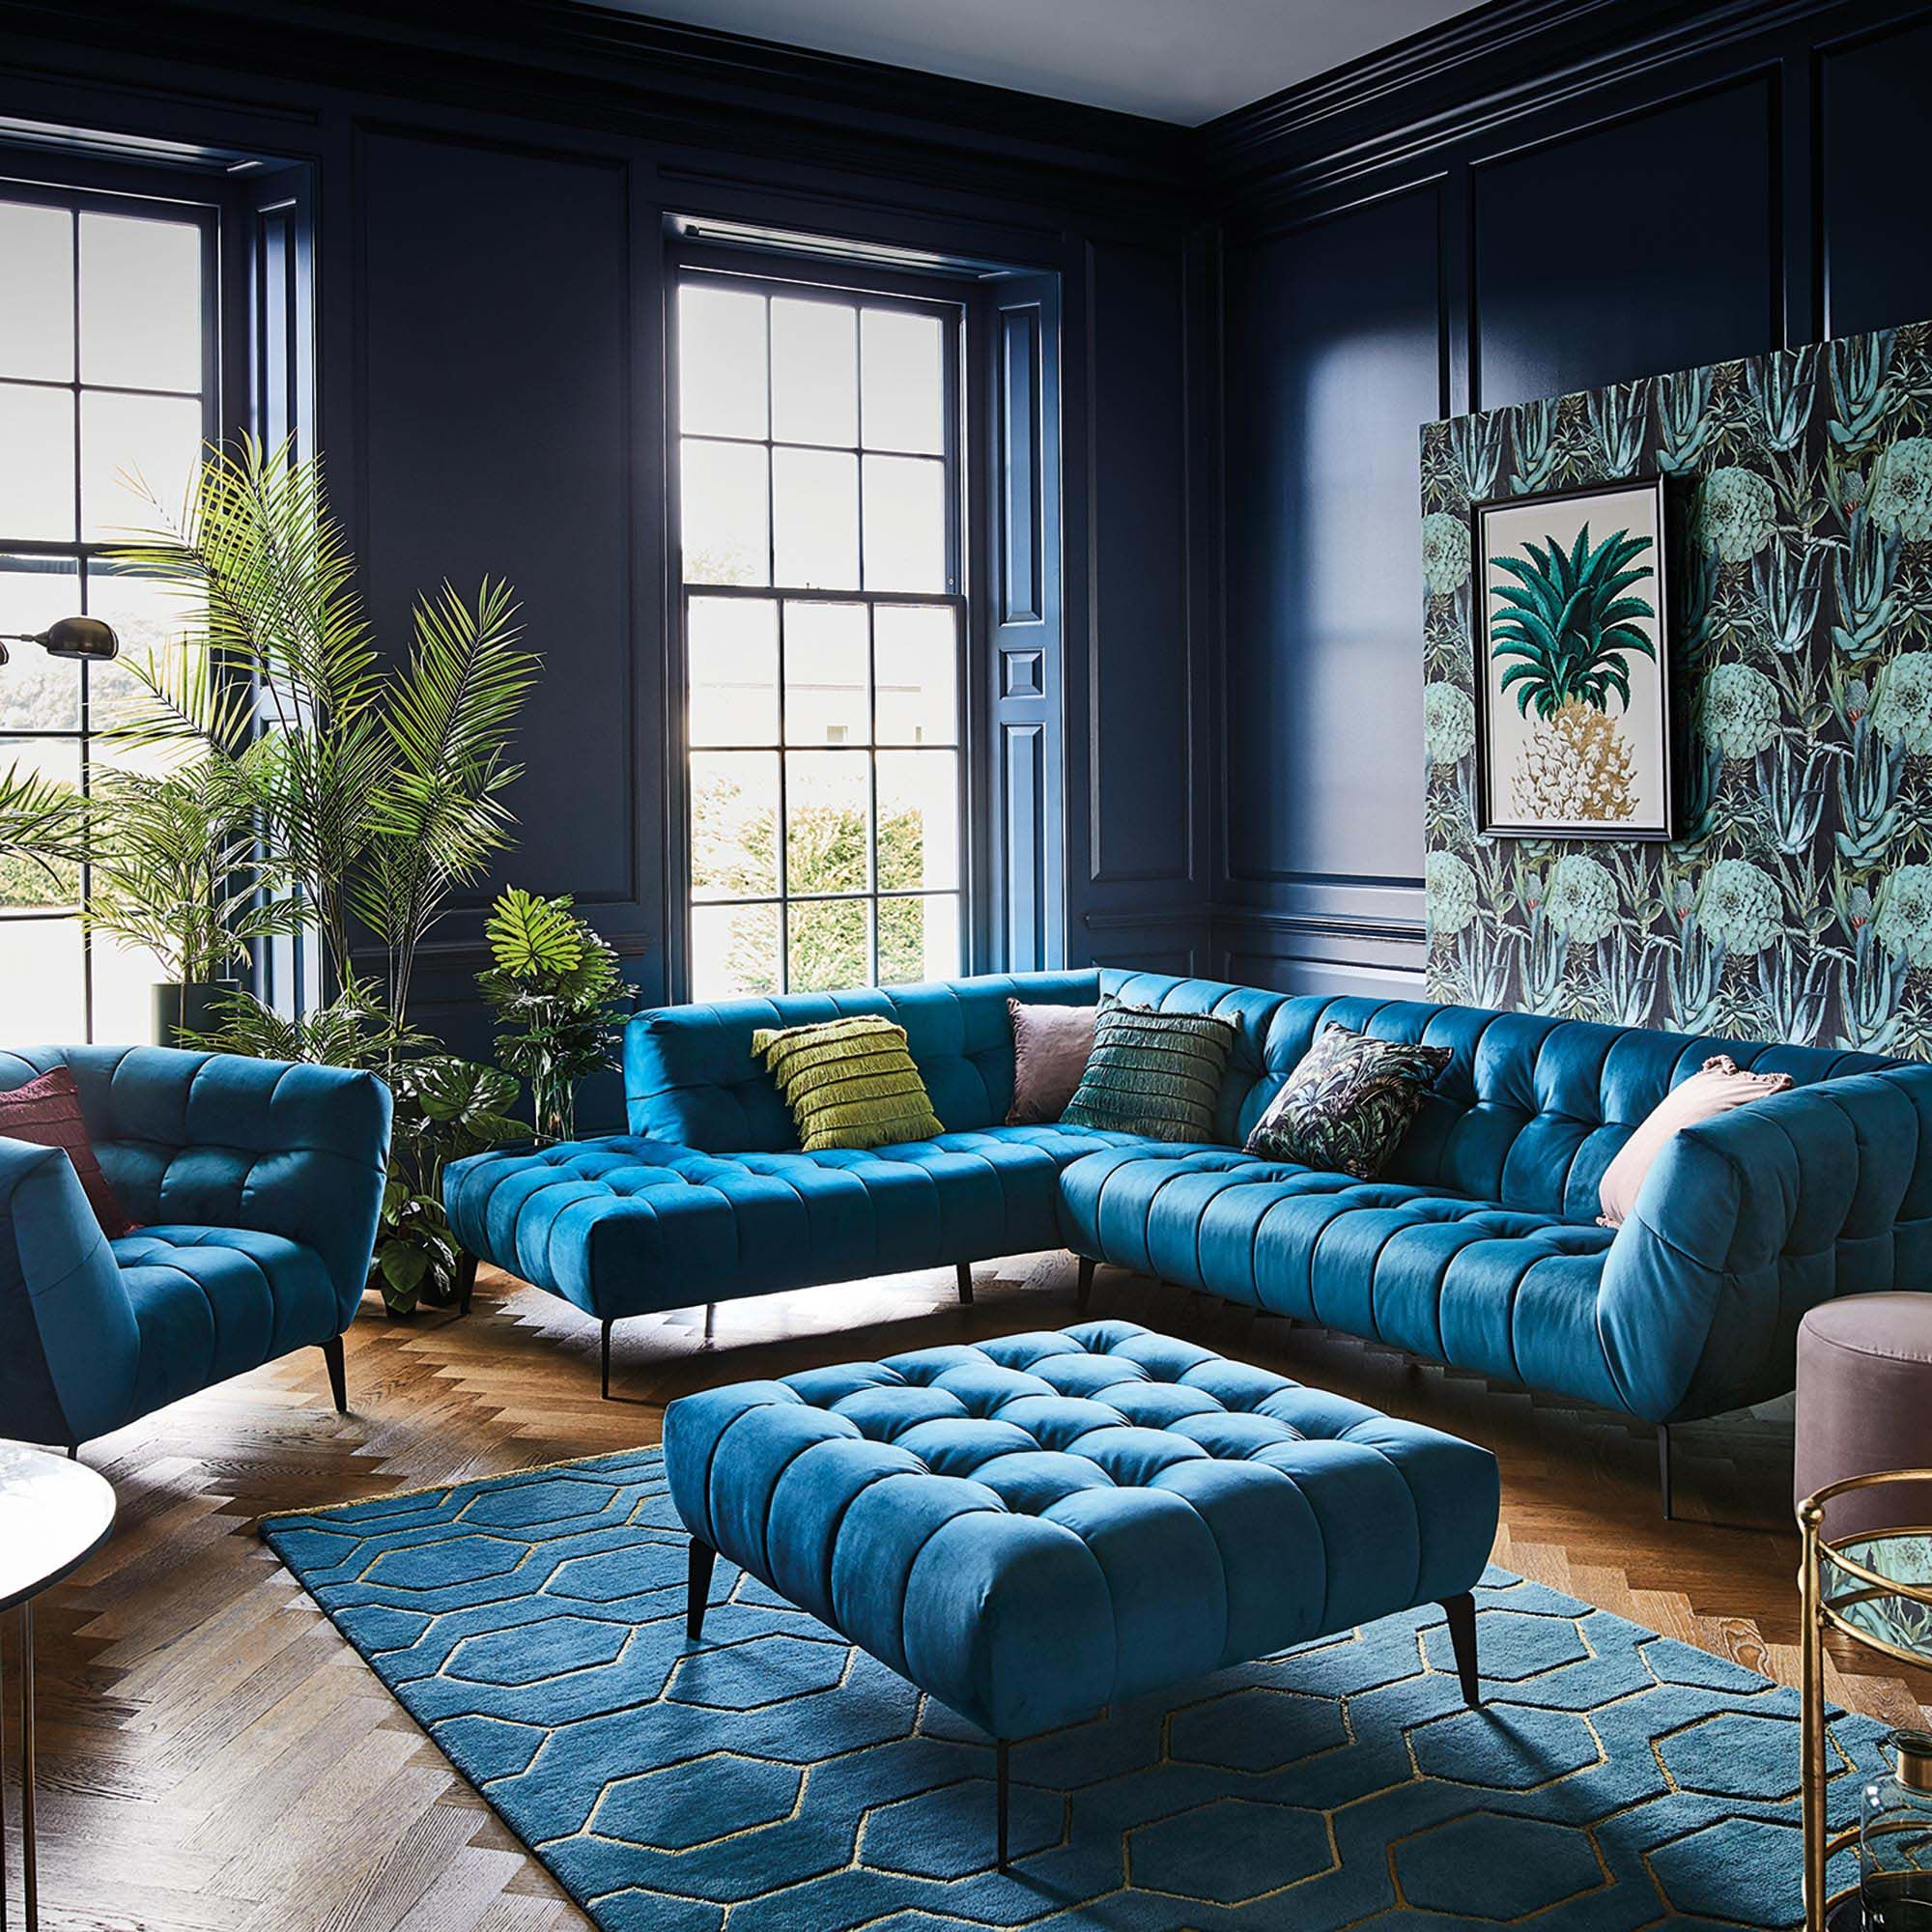 Azalea Left Hand Facing Corner Sofa Available Online At Barker Stonehouse Browse Our Fabulous Living Room Designs Living Room Sofa Design Luxury Living Room